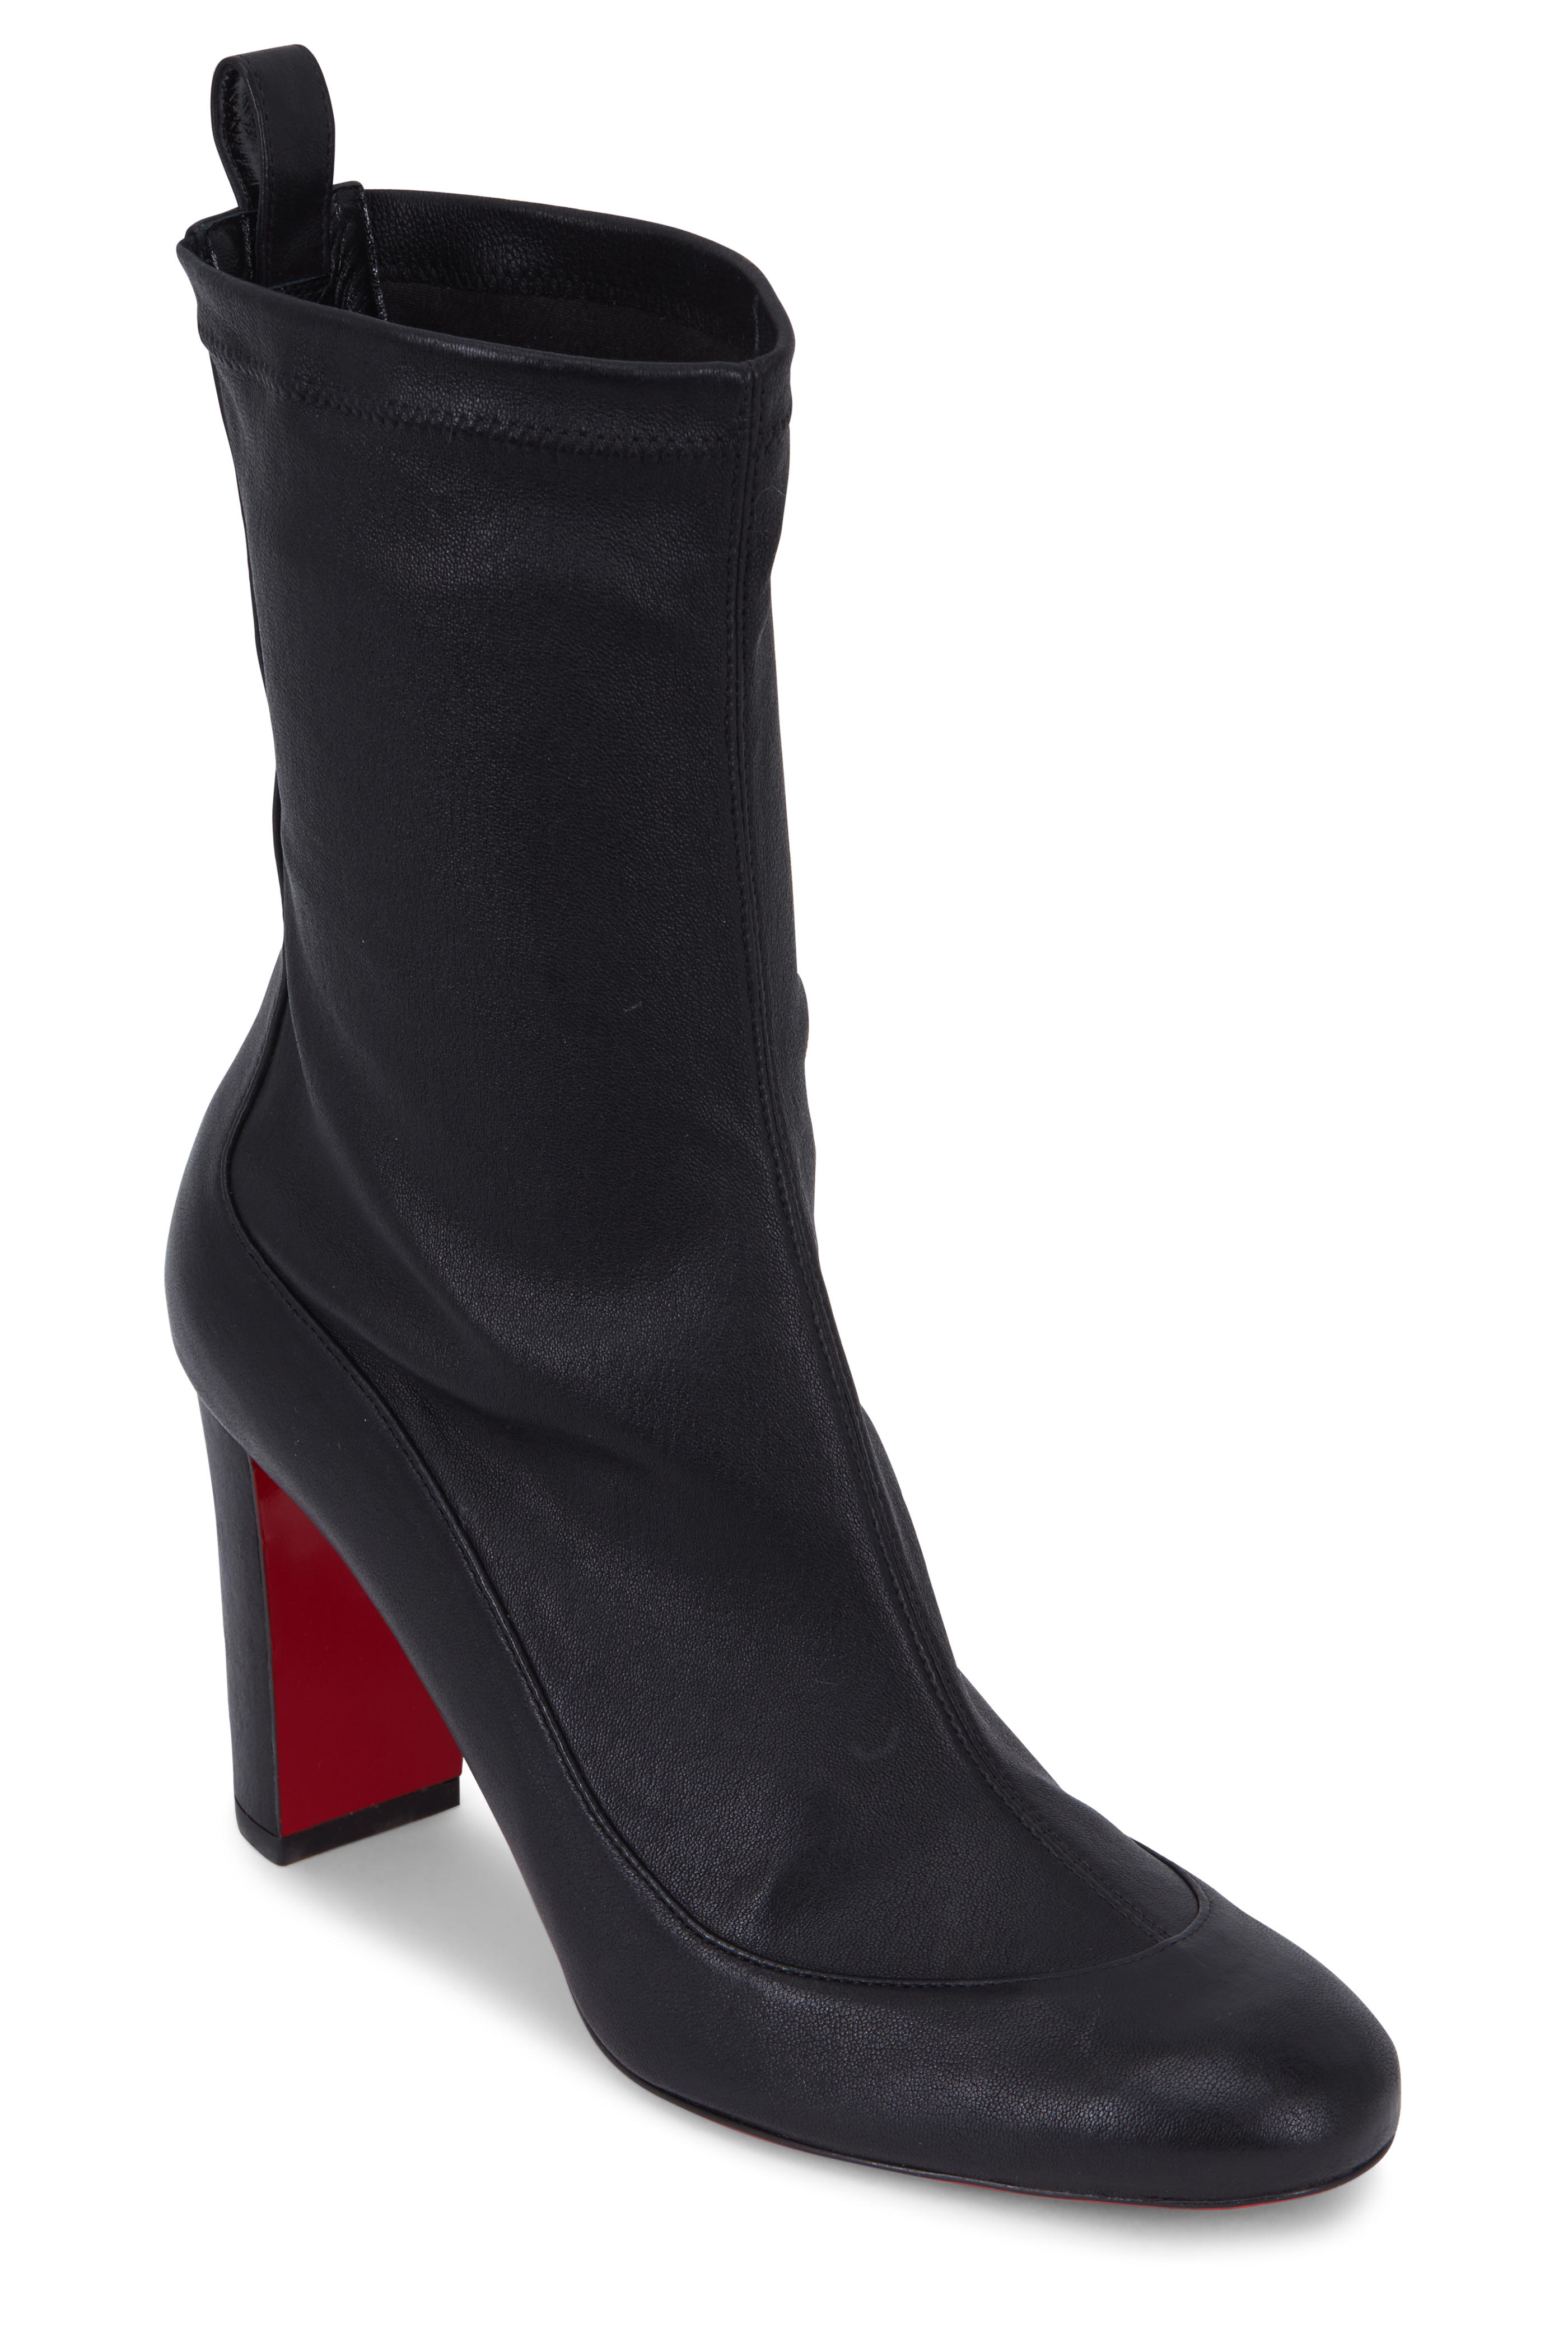 b4af5b905f2d Christian Louboutin - Gena Nappa Stretch Leather Ankle Boot